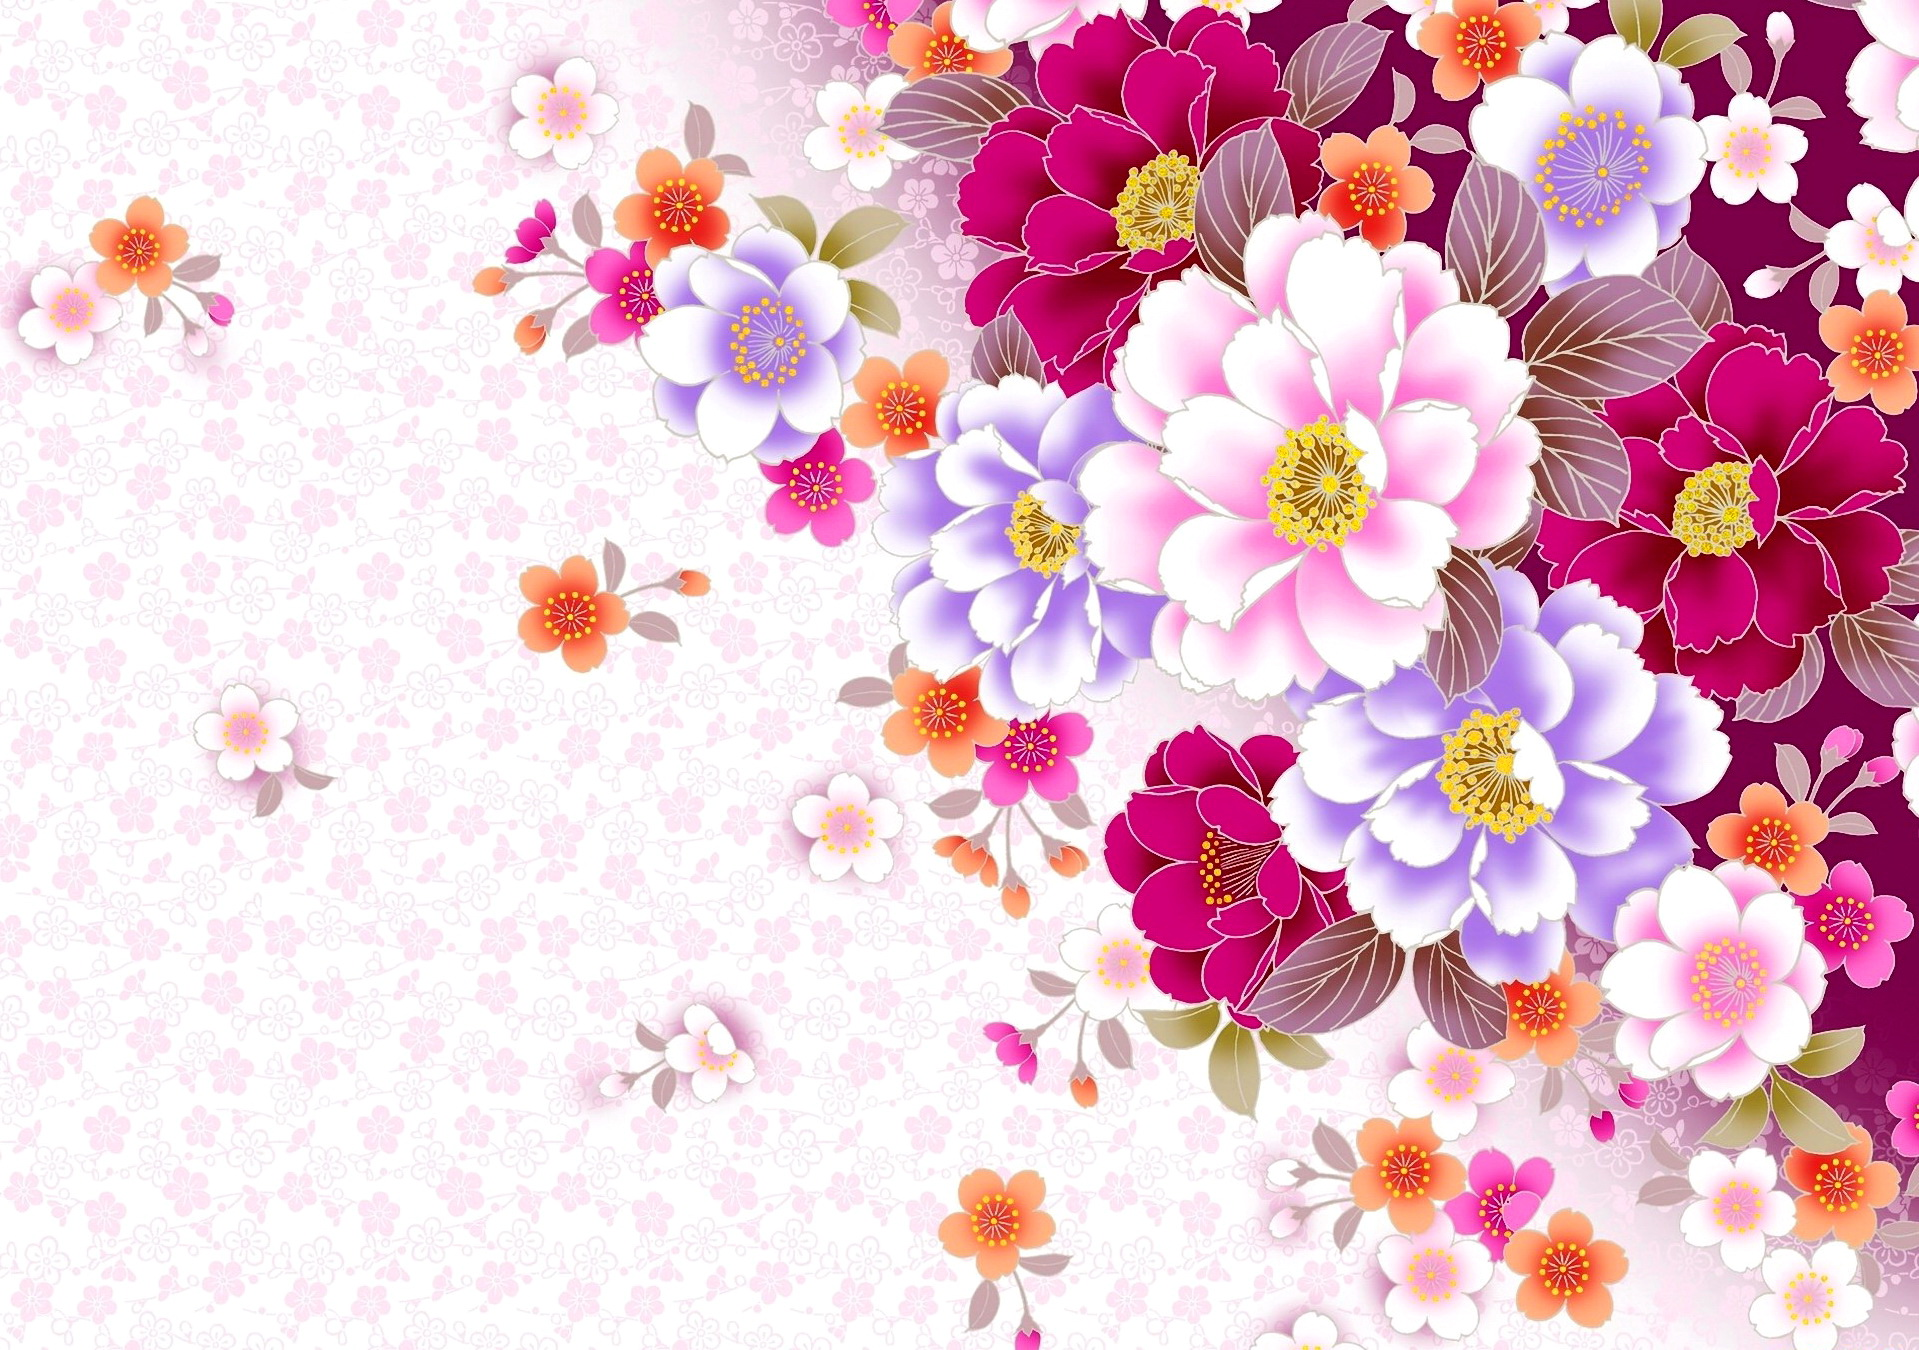 Floral images background picture free 2880x1800px Floral Hd Background Images | #392760 picture free